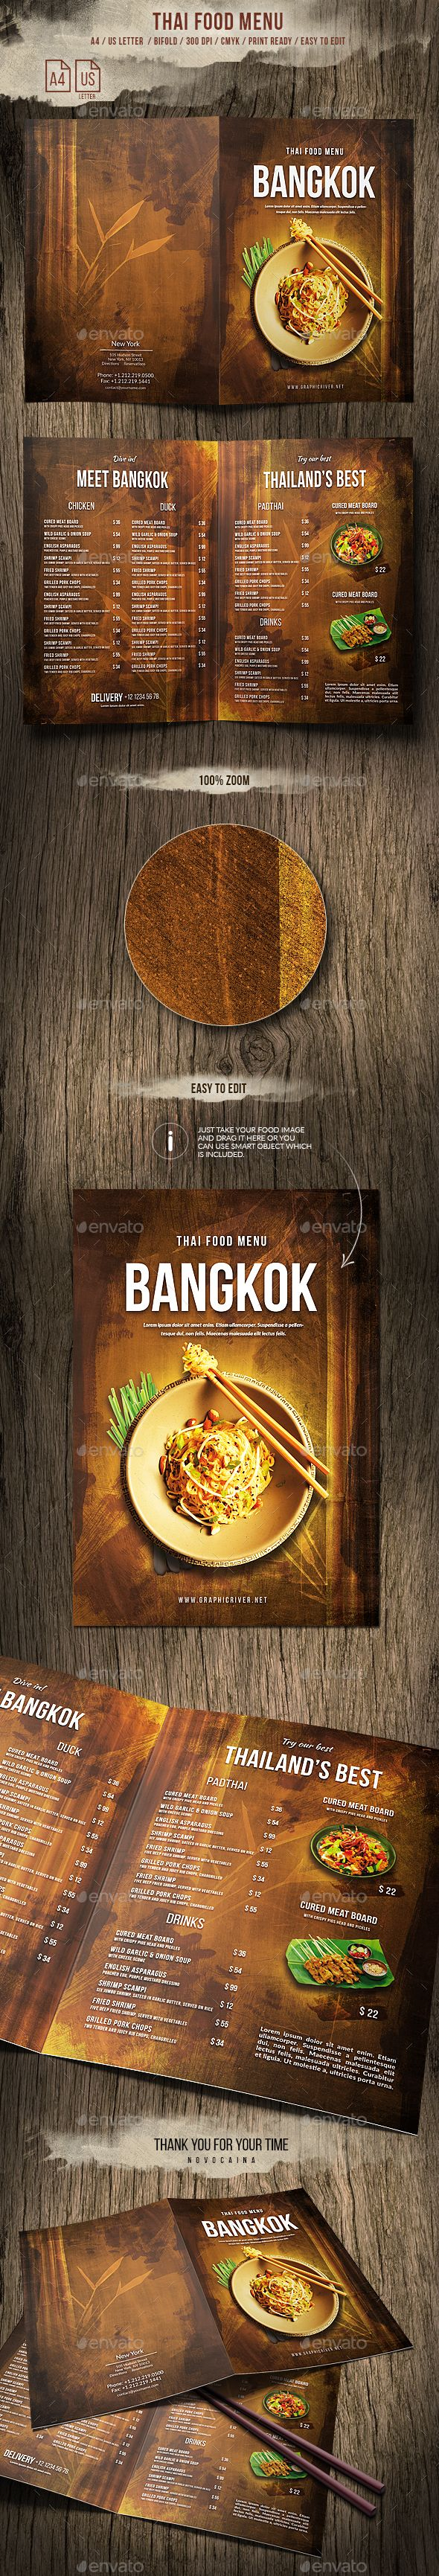 Thai A4 and US Letter Bifold #Food #Menu - Food Menus Print Templates Download here: https://graphicriver.net/item/thai-a4-and-us-letter-bifold-food-menu/20009525?ref=alena994